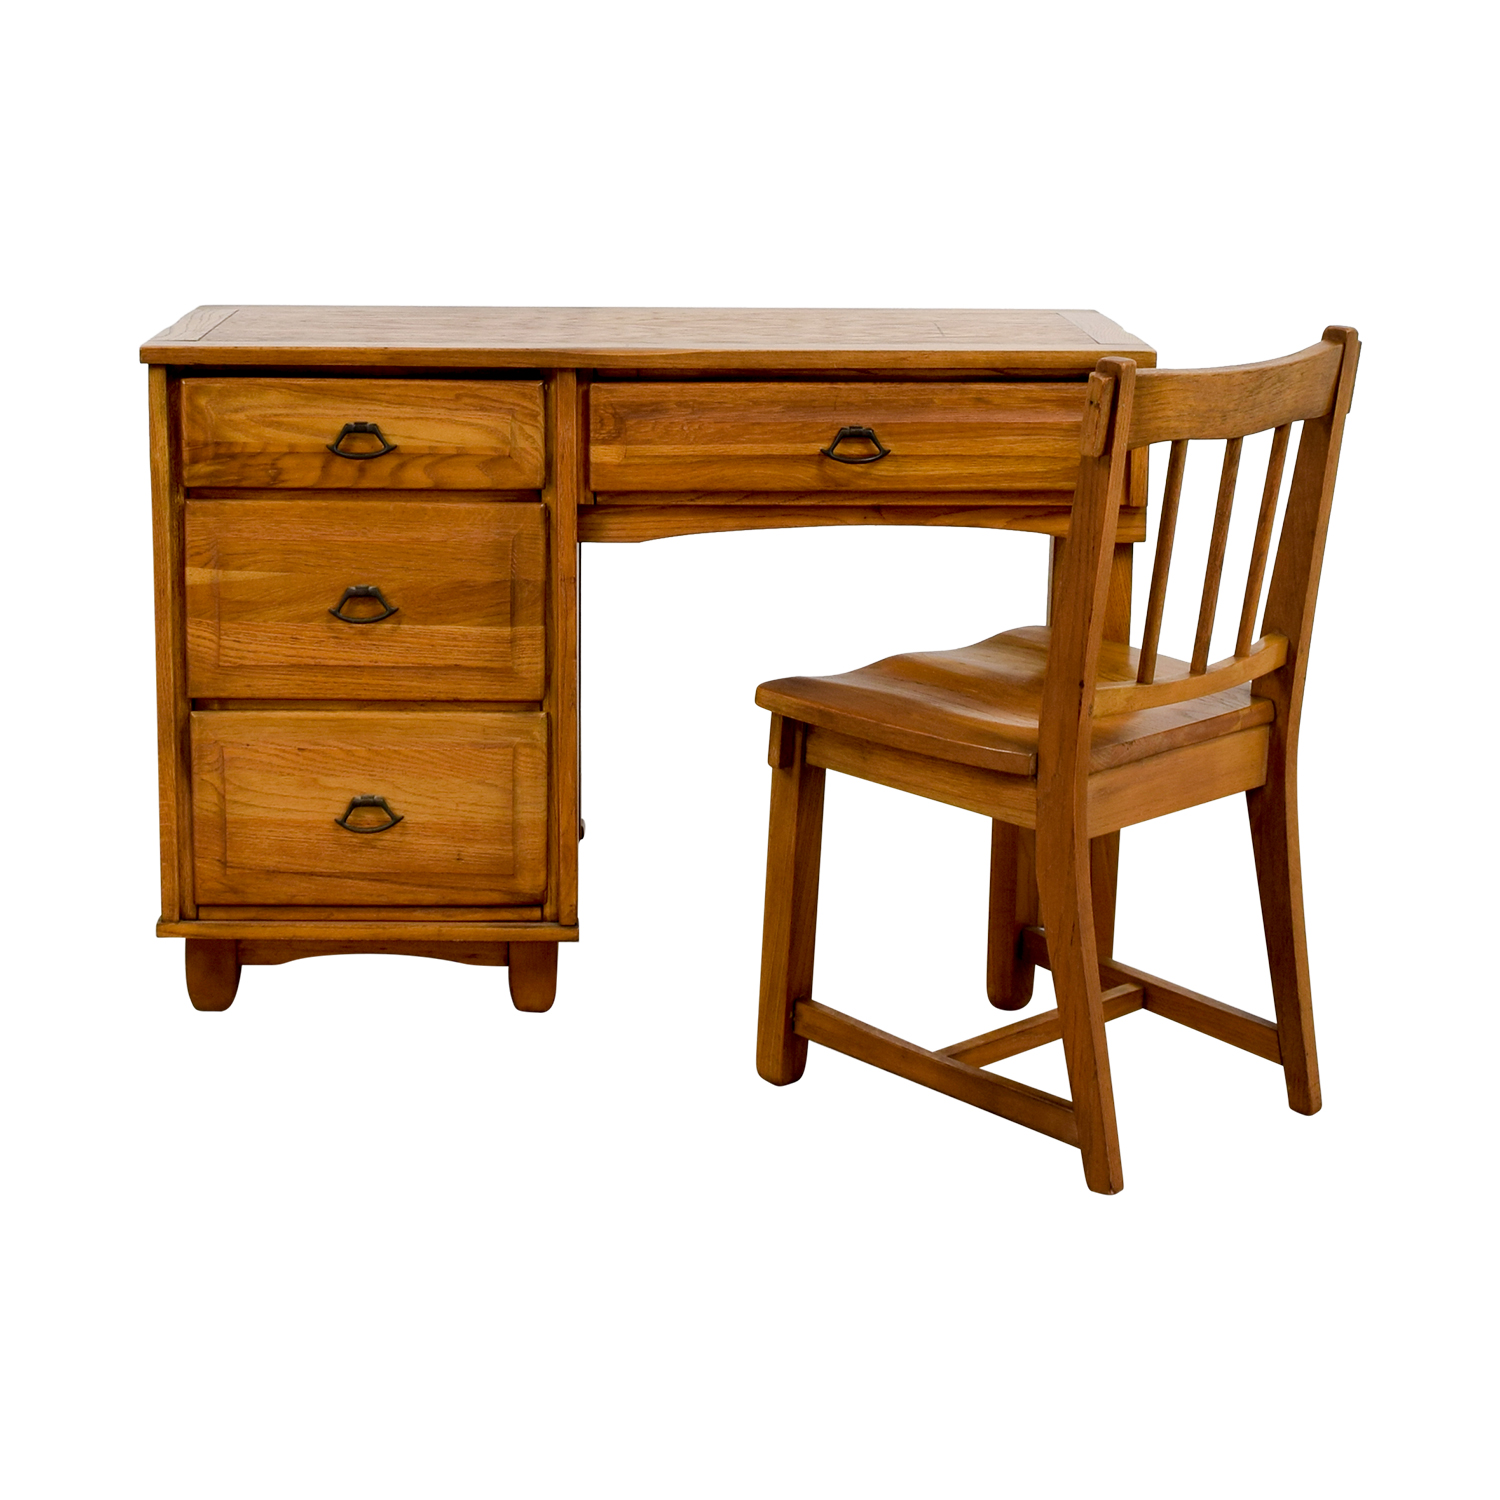 old office chair and table bath chairs for adults walmart vintage wooden desk hostgarcia